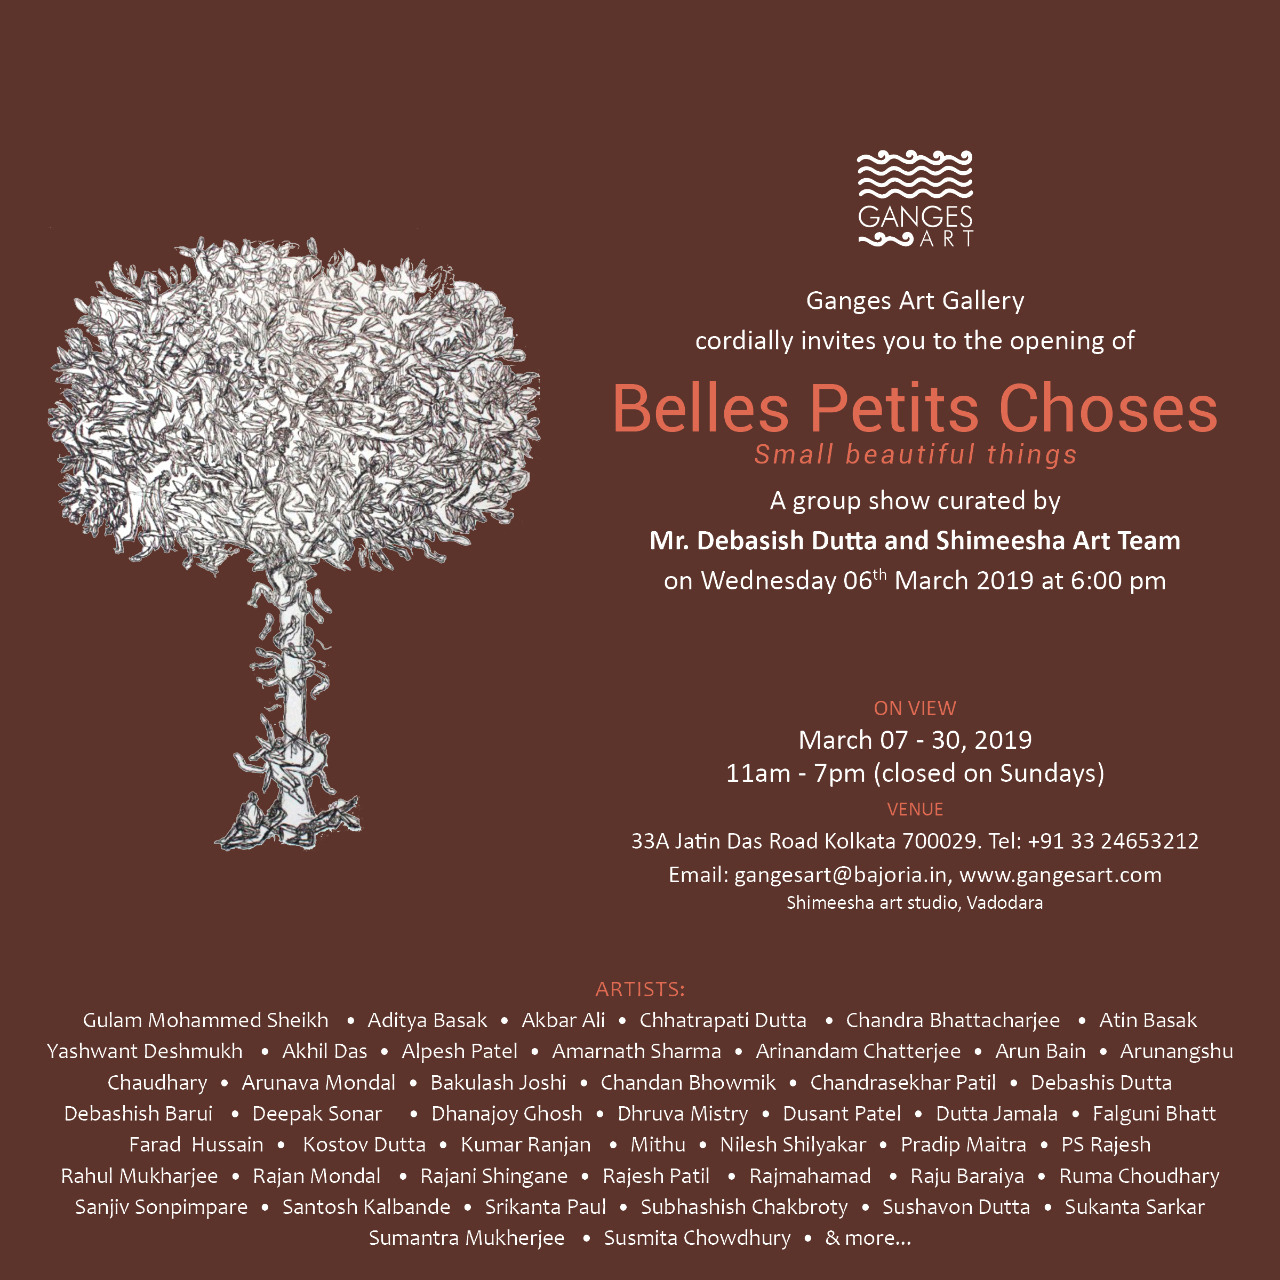 Belles Petits Choses - A group show cureted by Mr. Dabasish Dutta